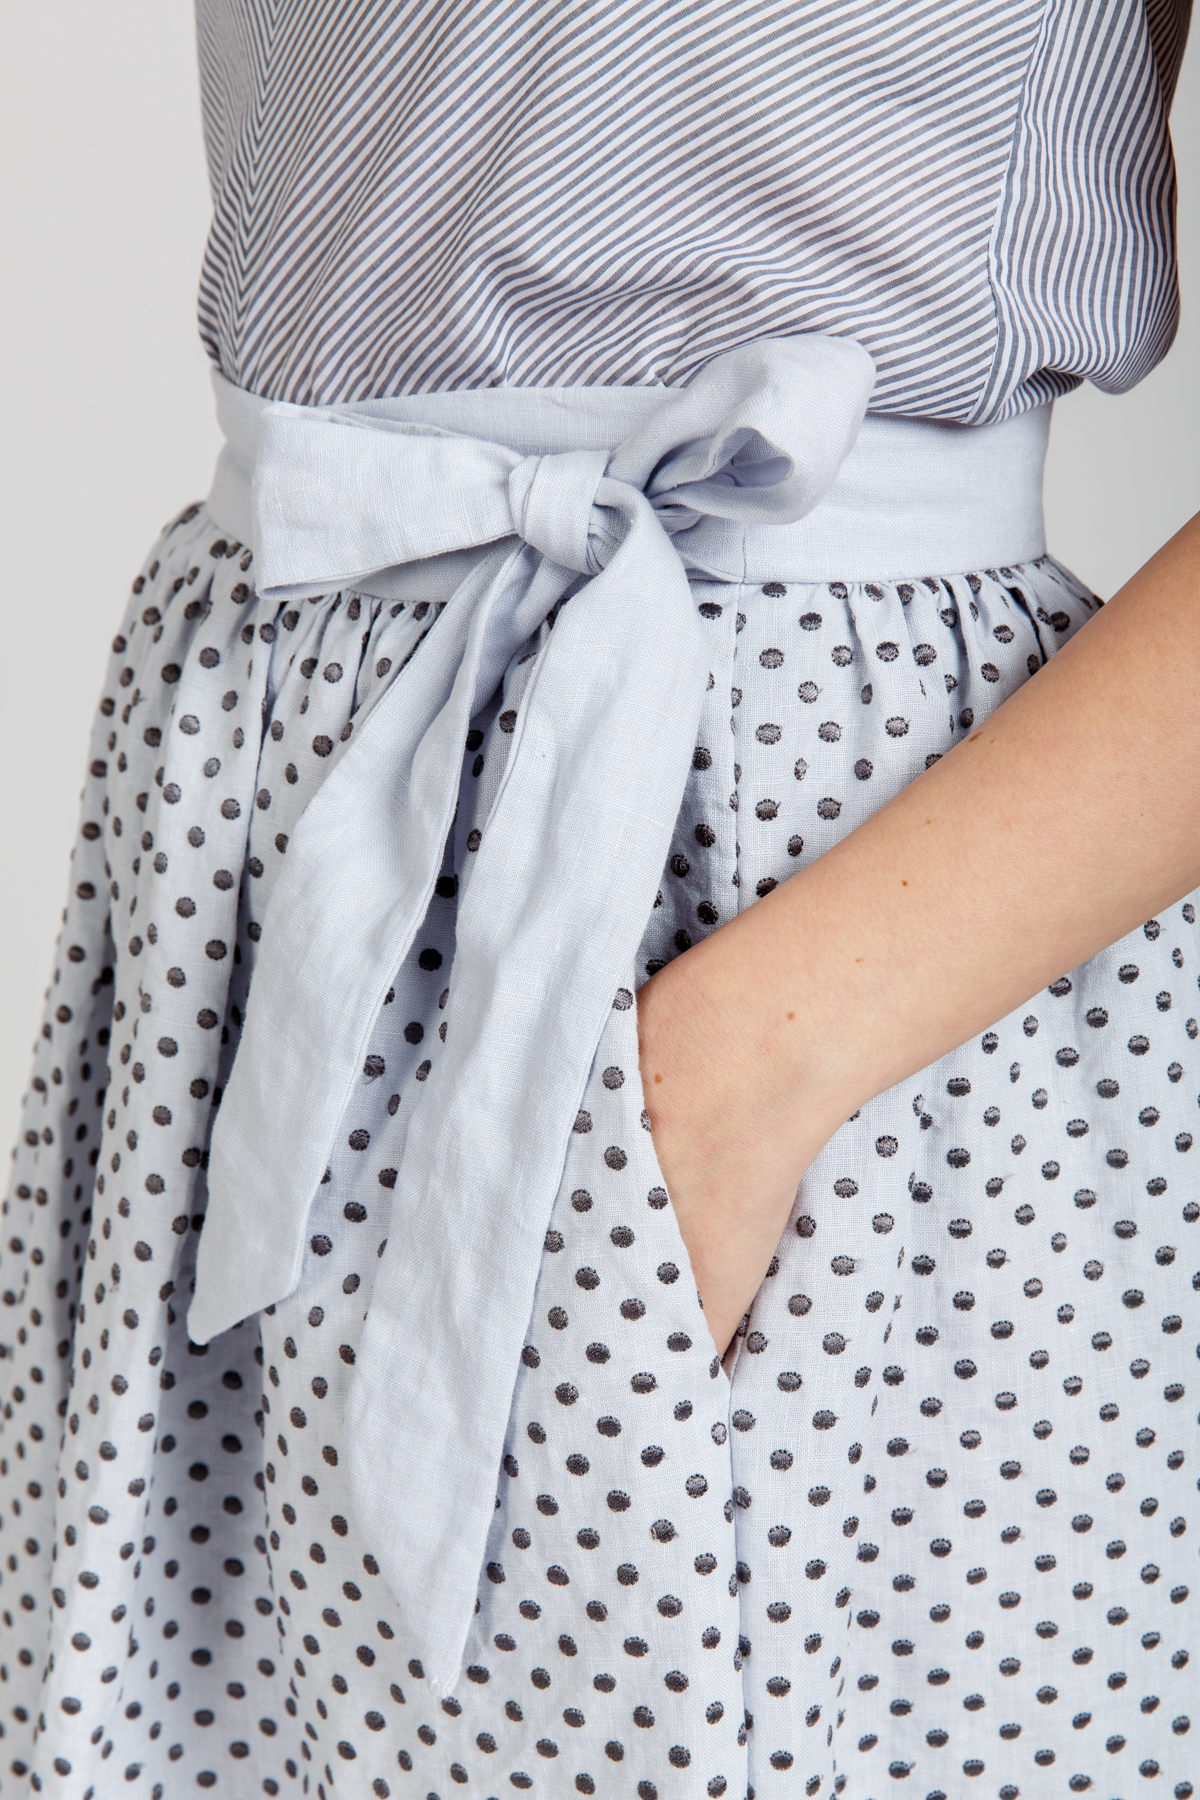 Megan Nielsen Wattle skirt sewing pattern // modular pattern with two mix and match waistband options and four skirt options!